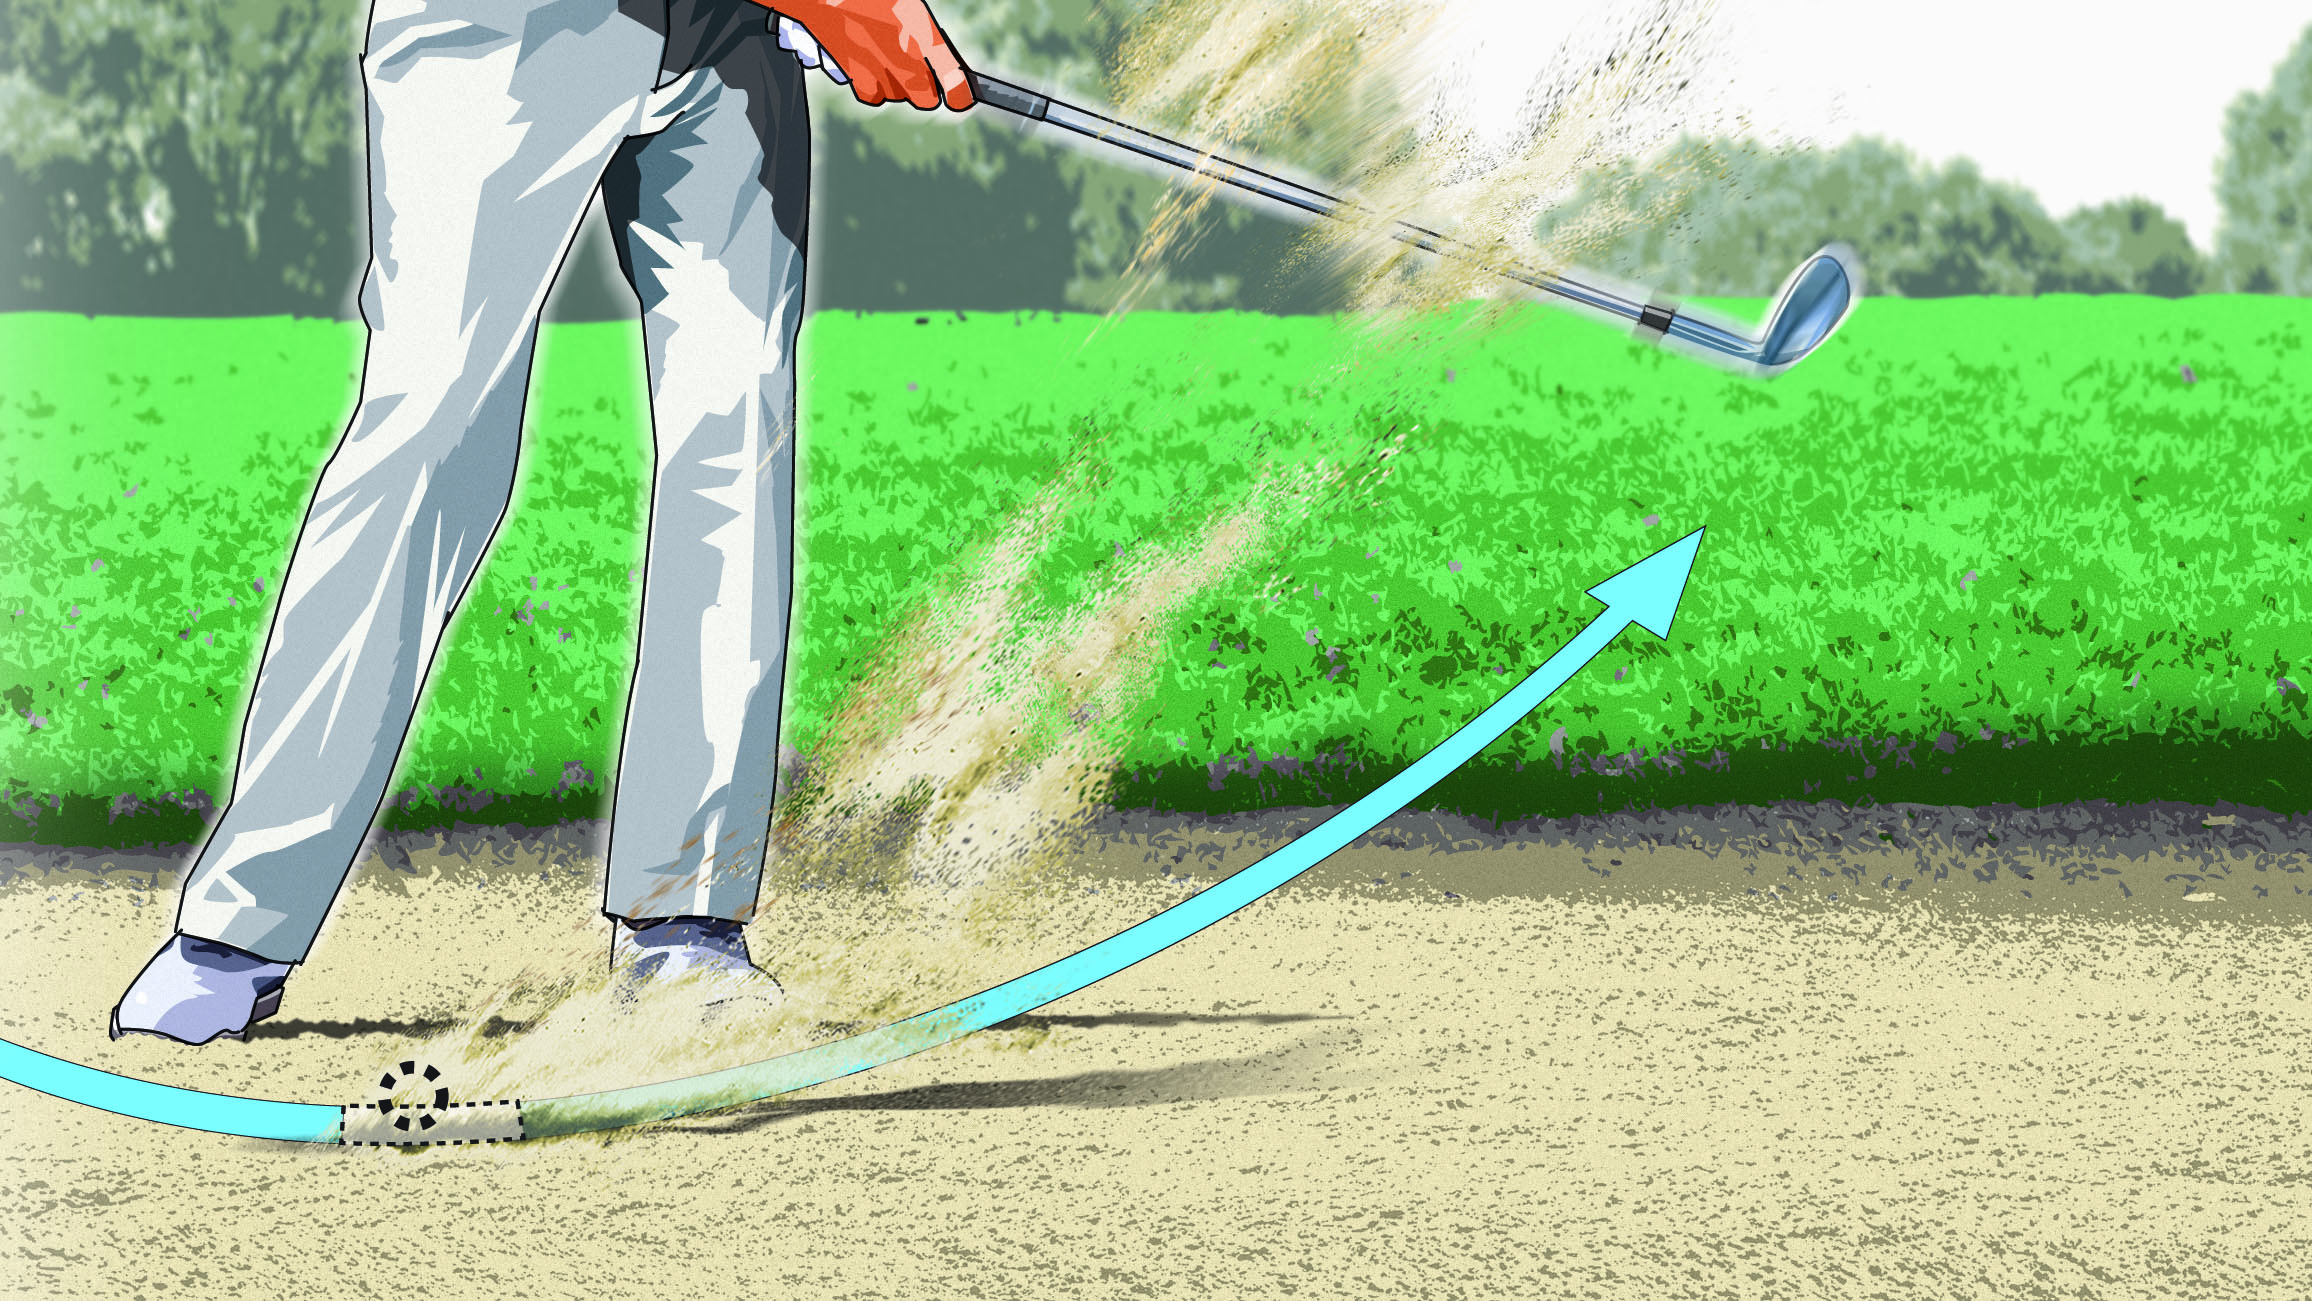 Instead of chunking it or skulling it, your new grip helps you take the perfect amount of sand every time.